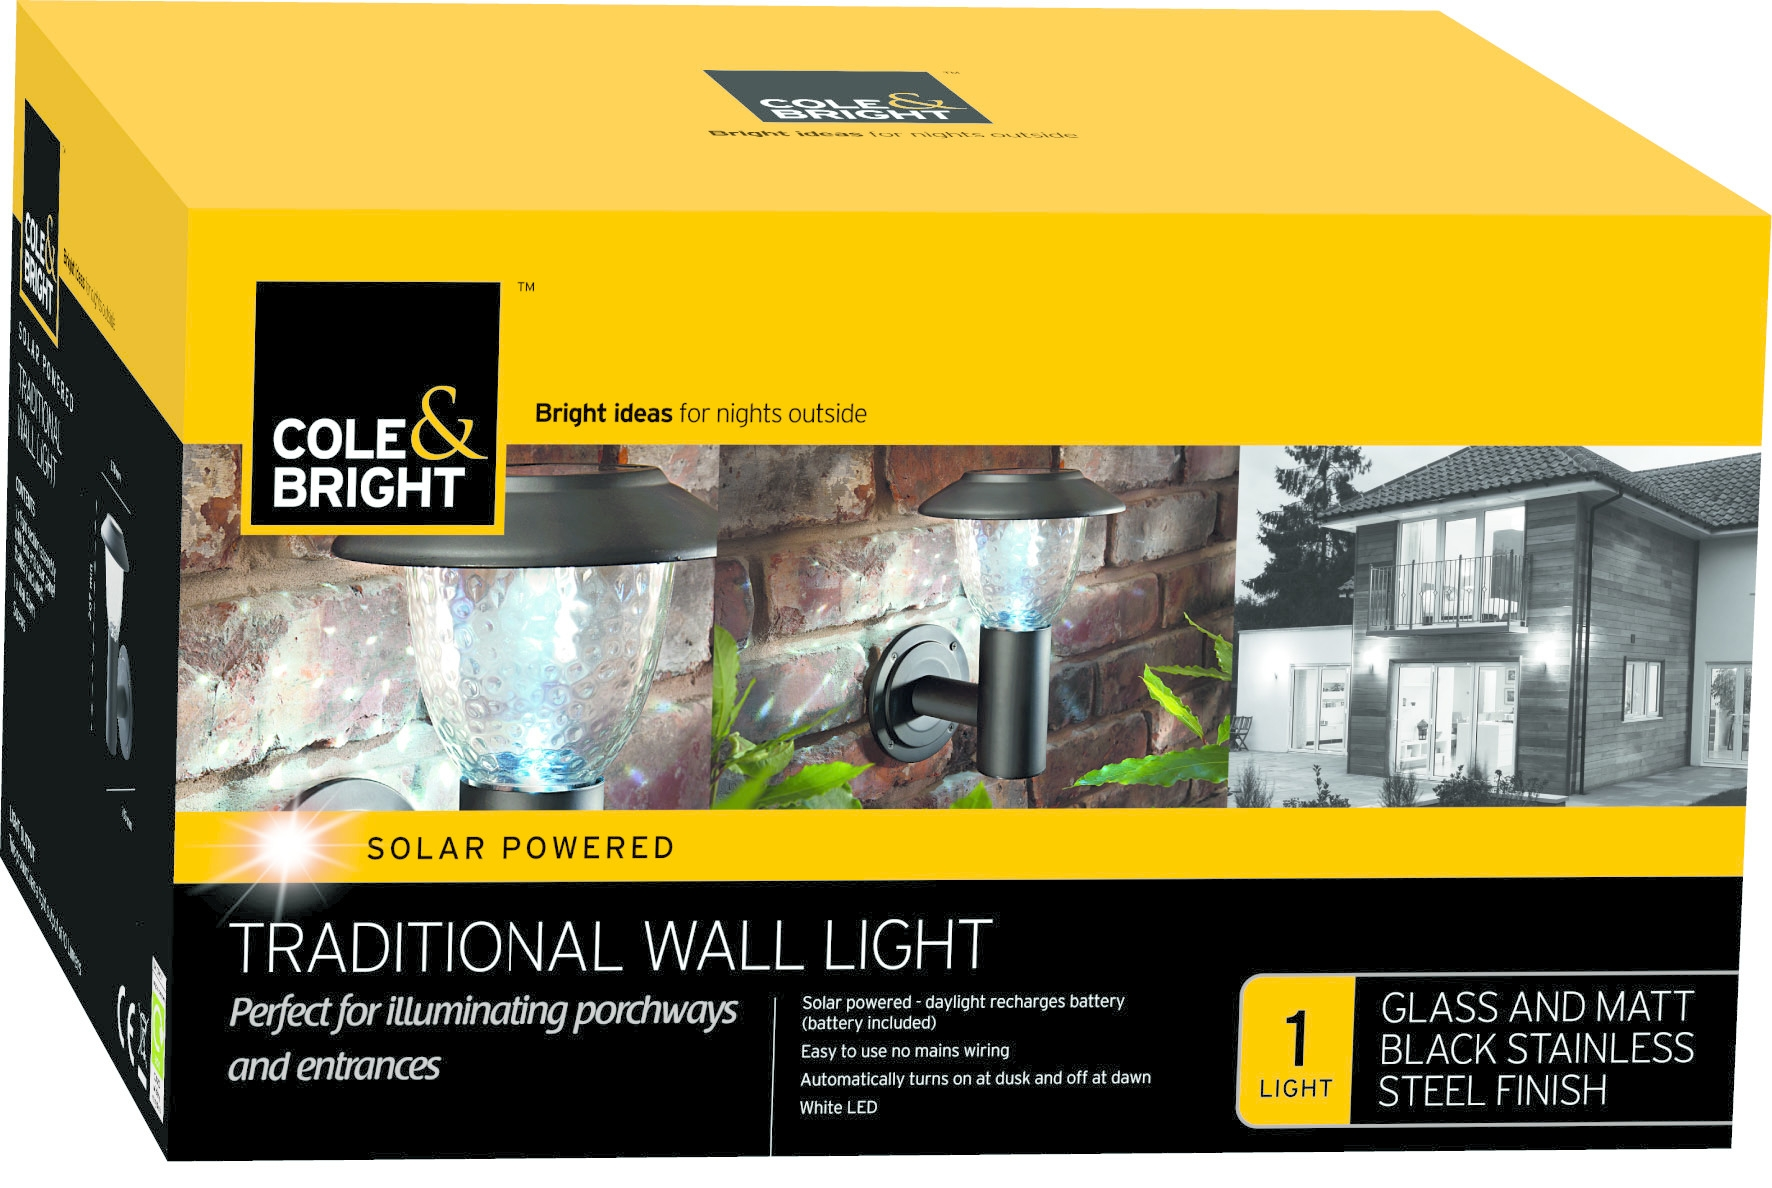 Cole & Bright LED Wall Lights, Stainles Steel, Outdoor Lamps eBay